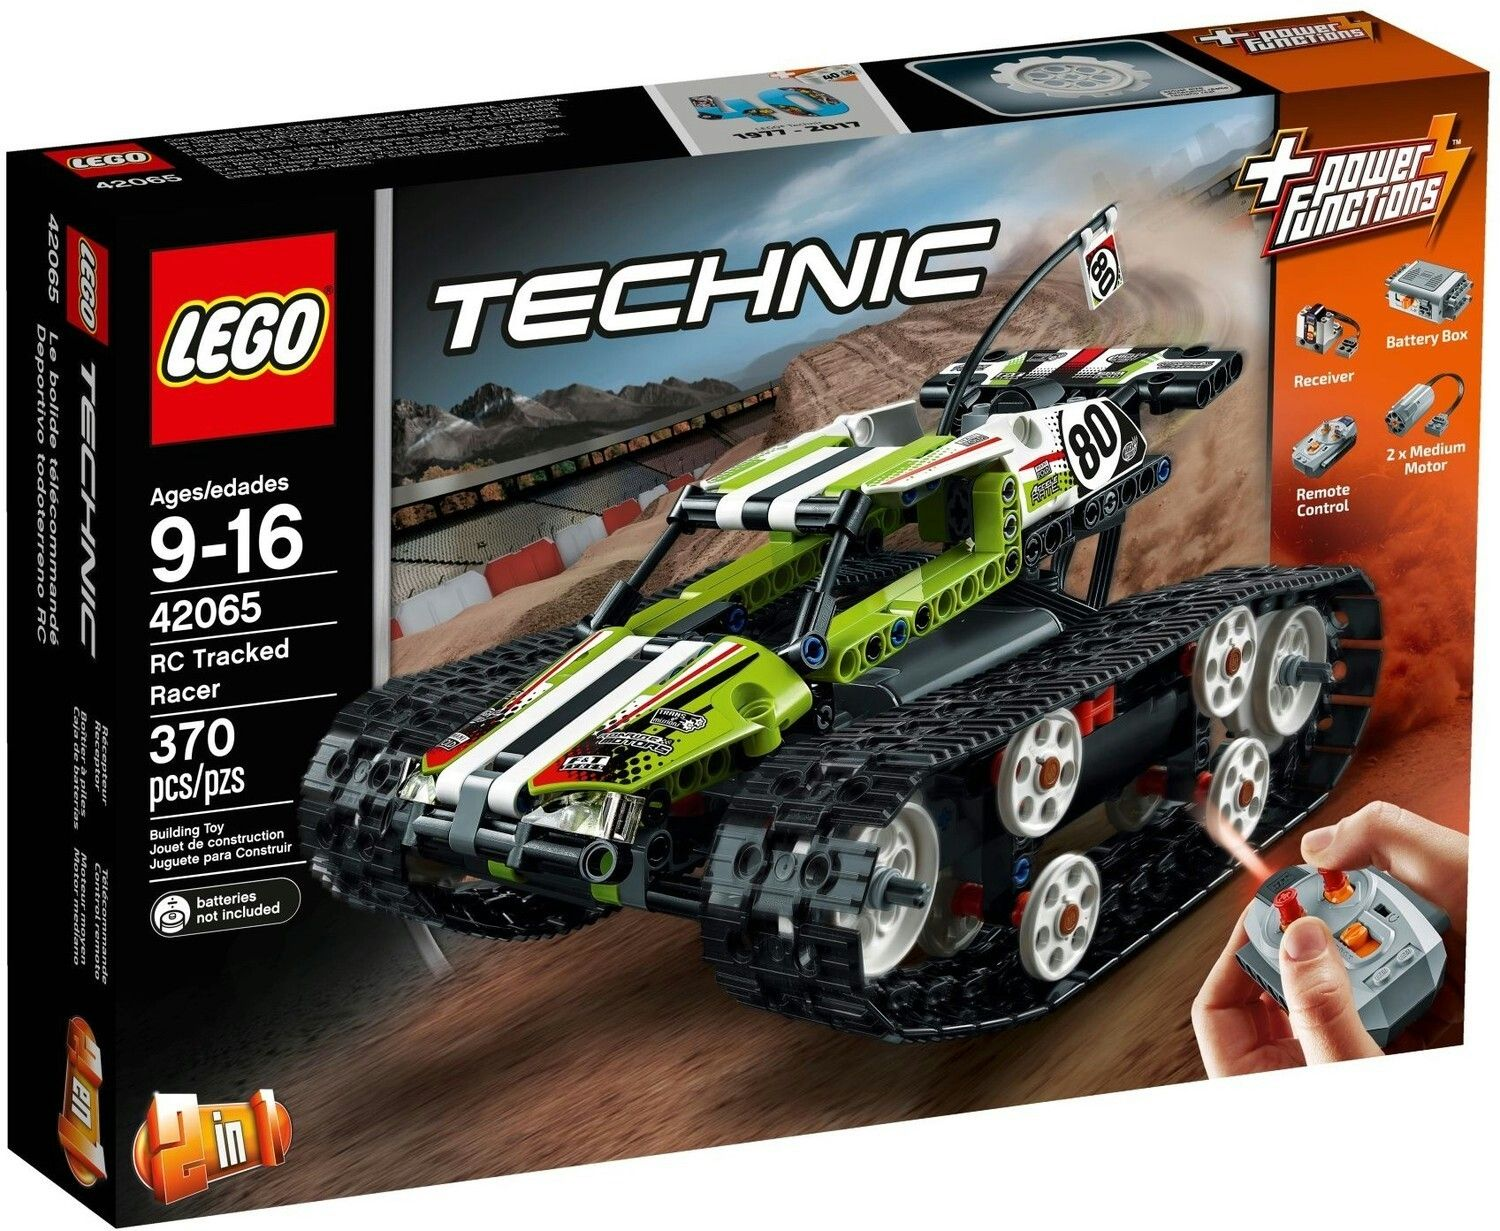 Rc Tracked Racer Rc Track Lego Technic Lego